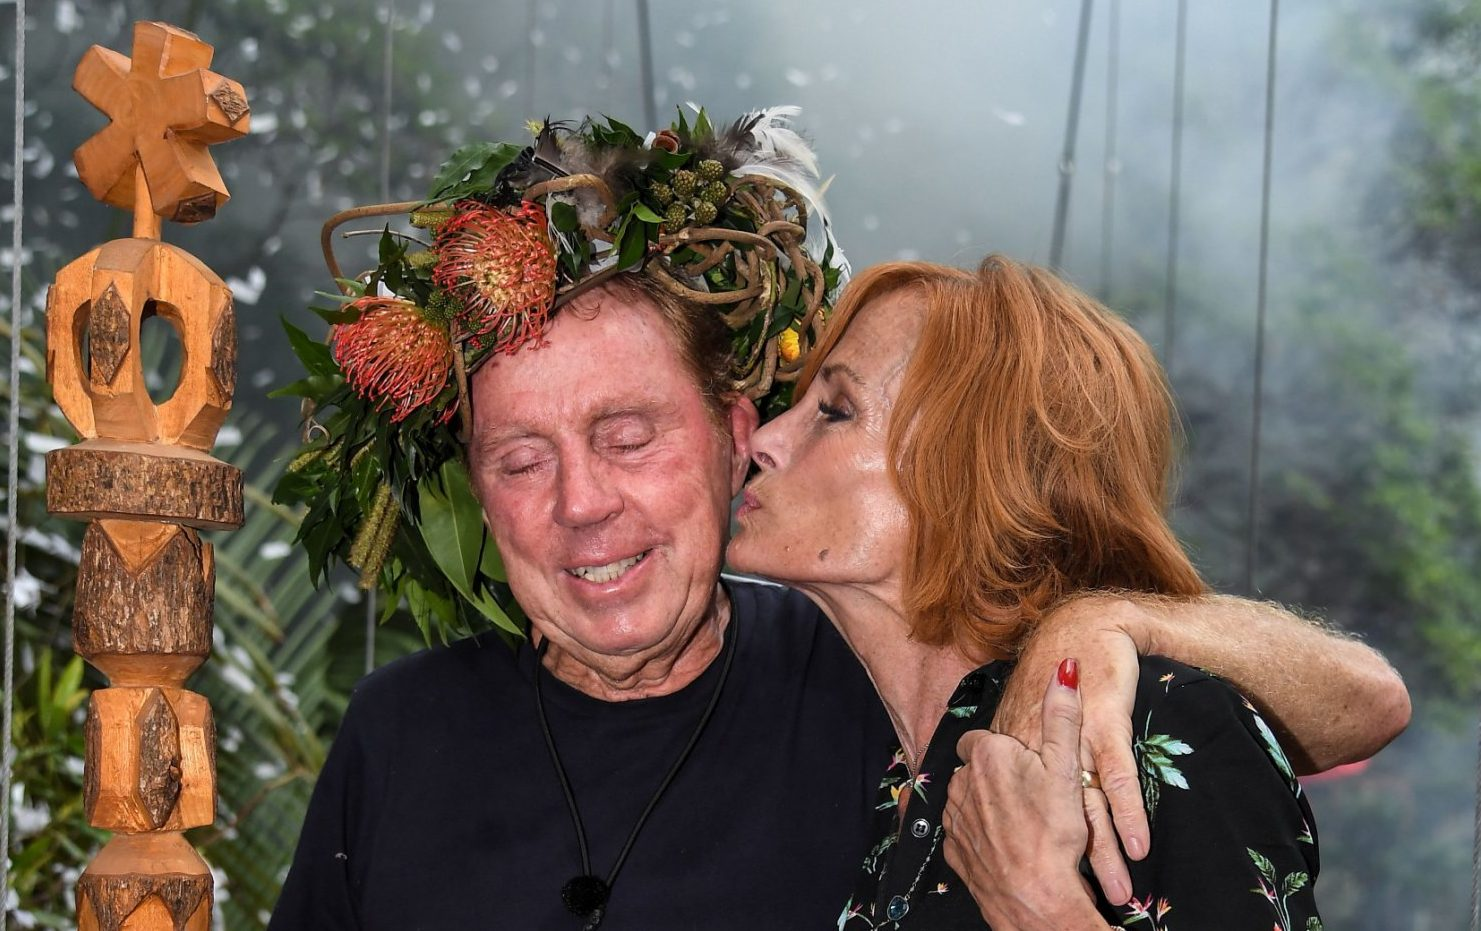 Harry Redknapp calls running over wife Sandra 'worst experience of my life' – but she never blamed him